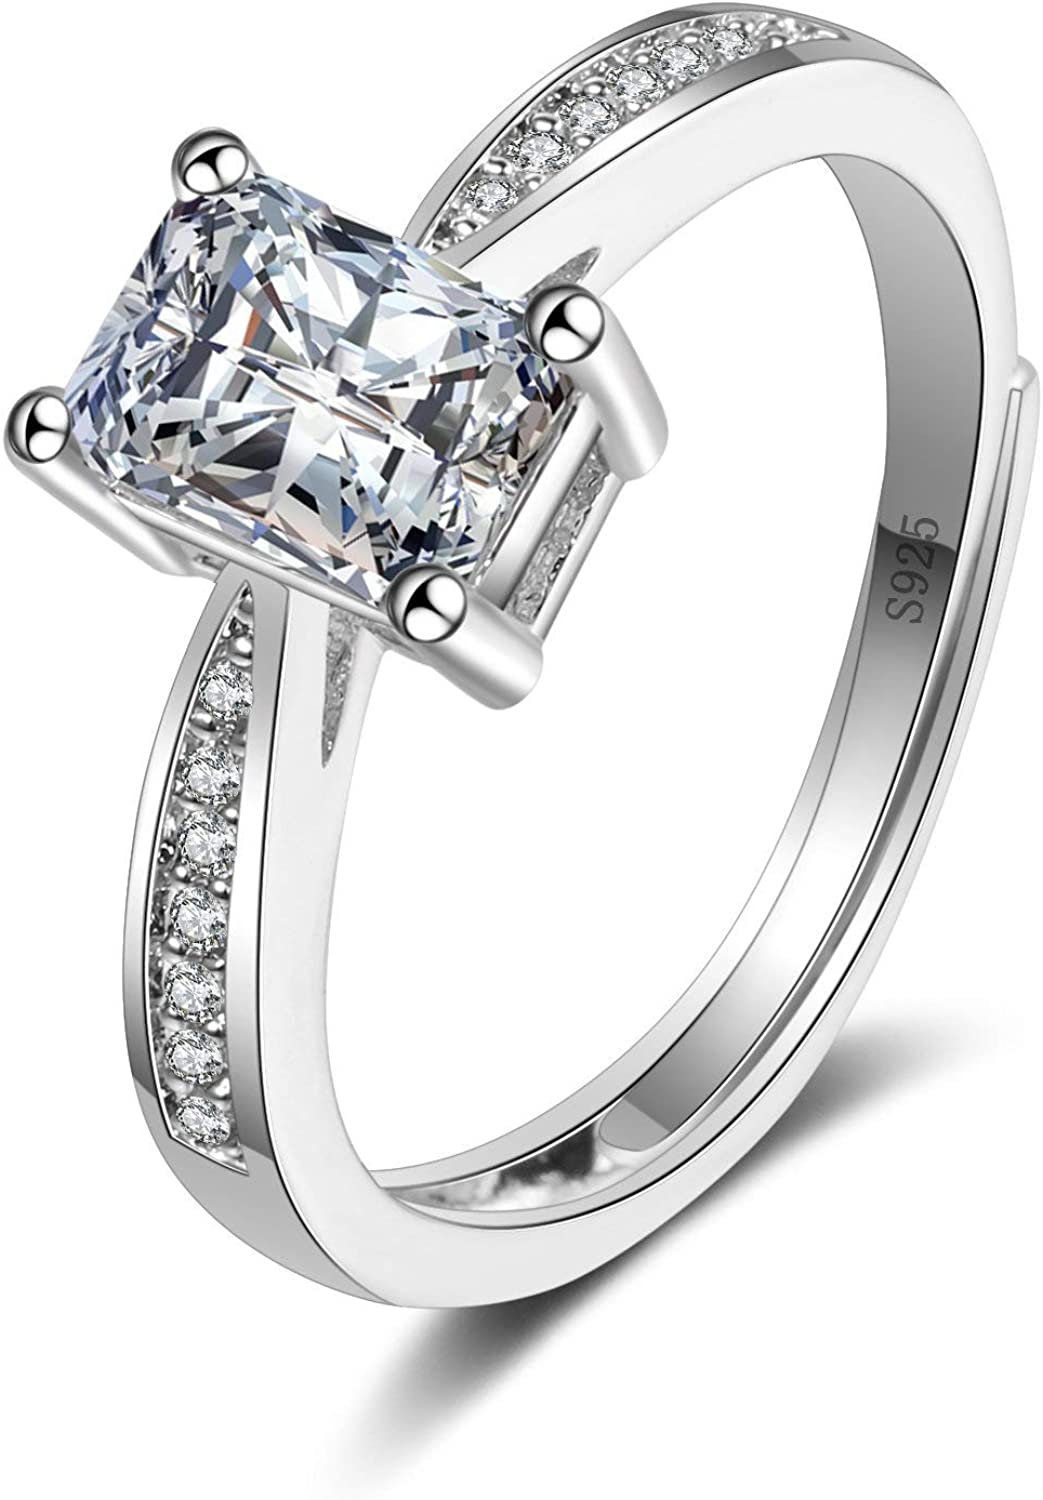 T Brand AAA+ Cubic Zirconia Adjustable Wedding Band Engagement Rings for Women Gifts for Valentines Day